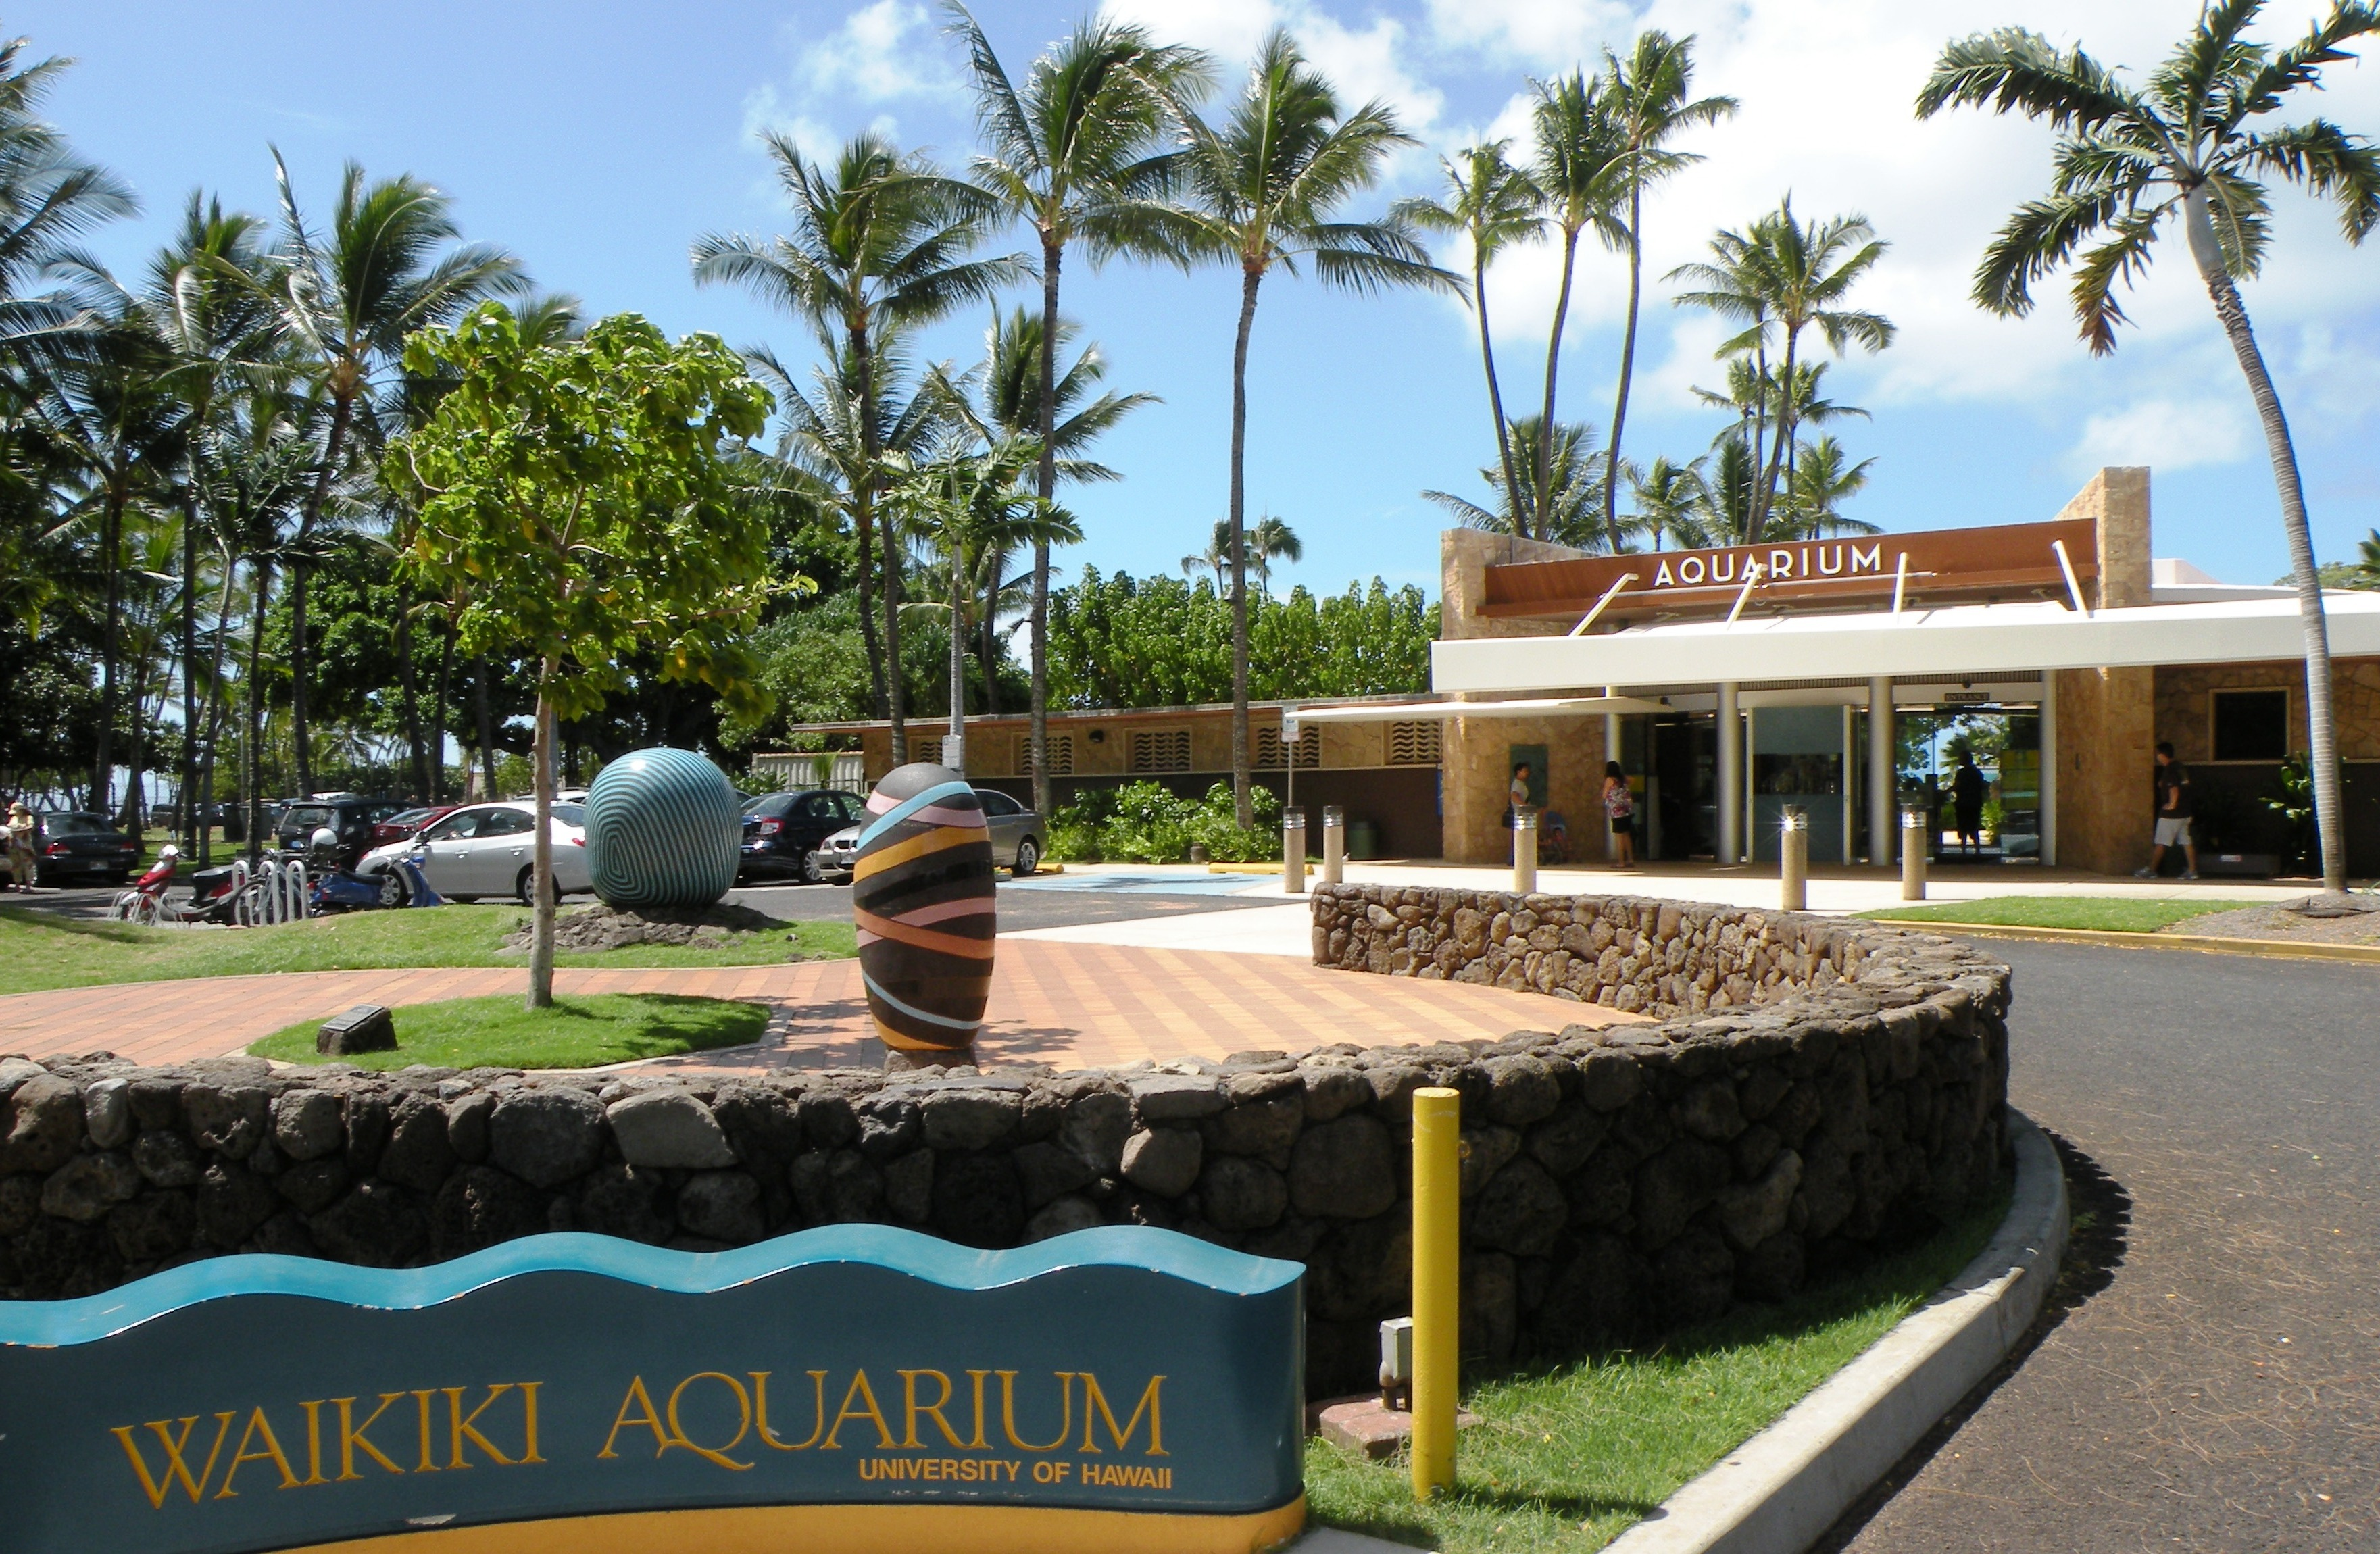 parking area outside waikiki aquarium